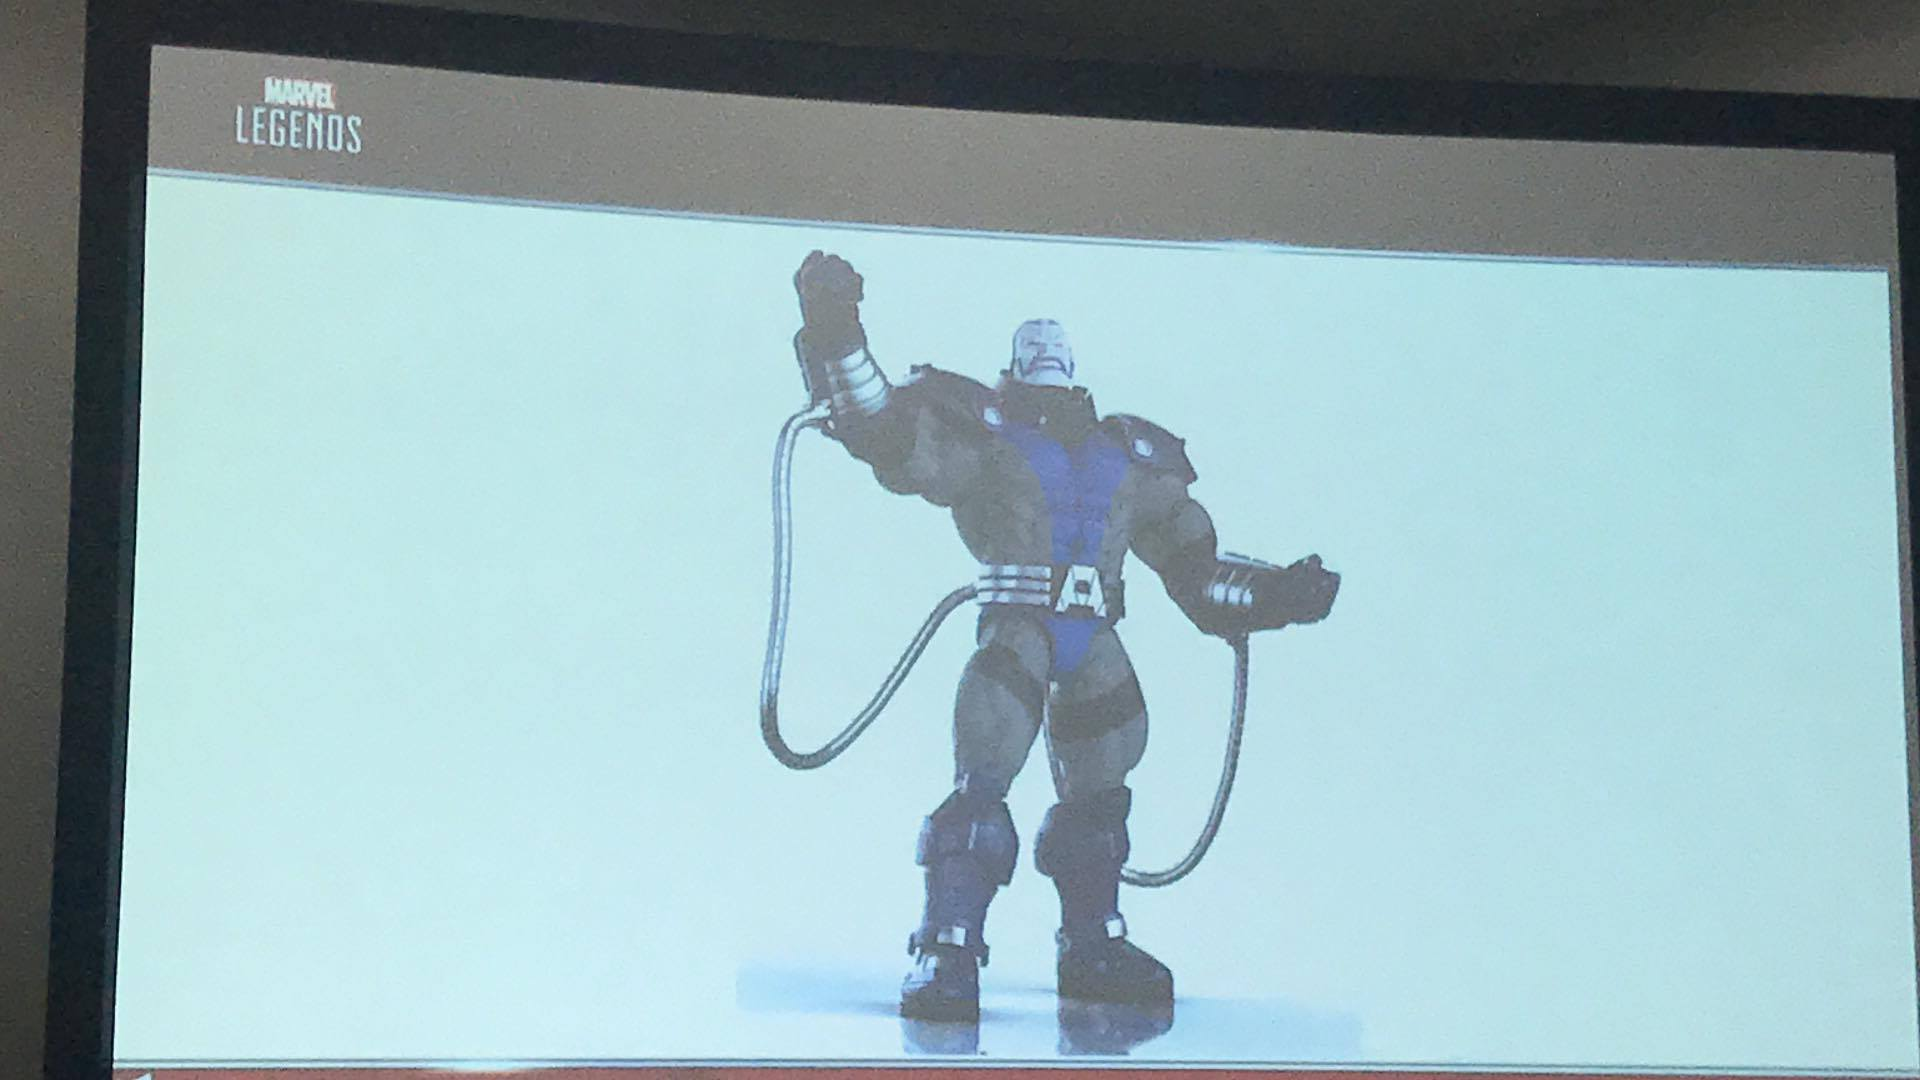 SDCC 2017: Hasbro Marvel Legends Panel Slides